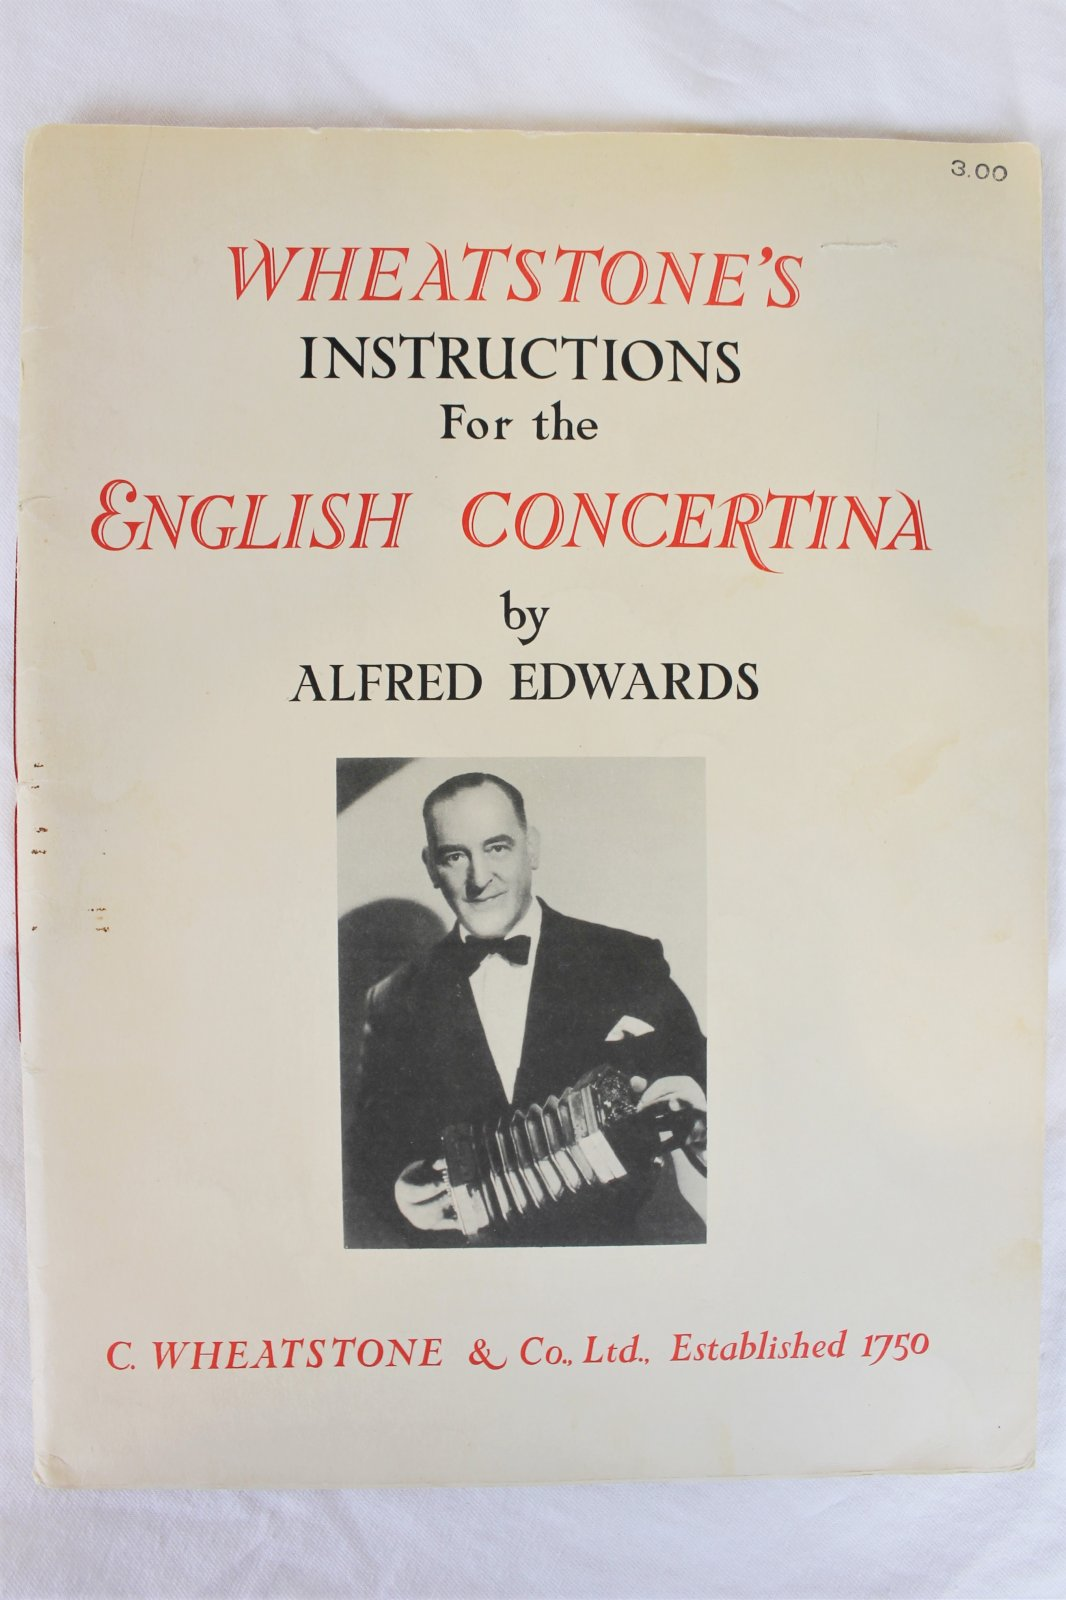 Used English Concertina Method Book - Wheatstone's Instructions for the English Concertina by Alfred Edwards